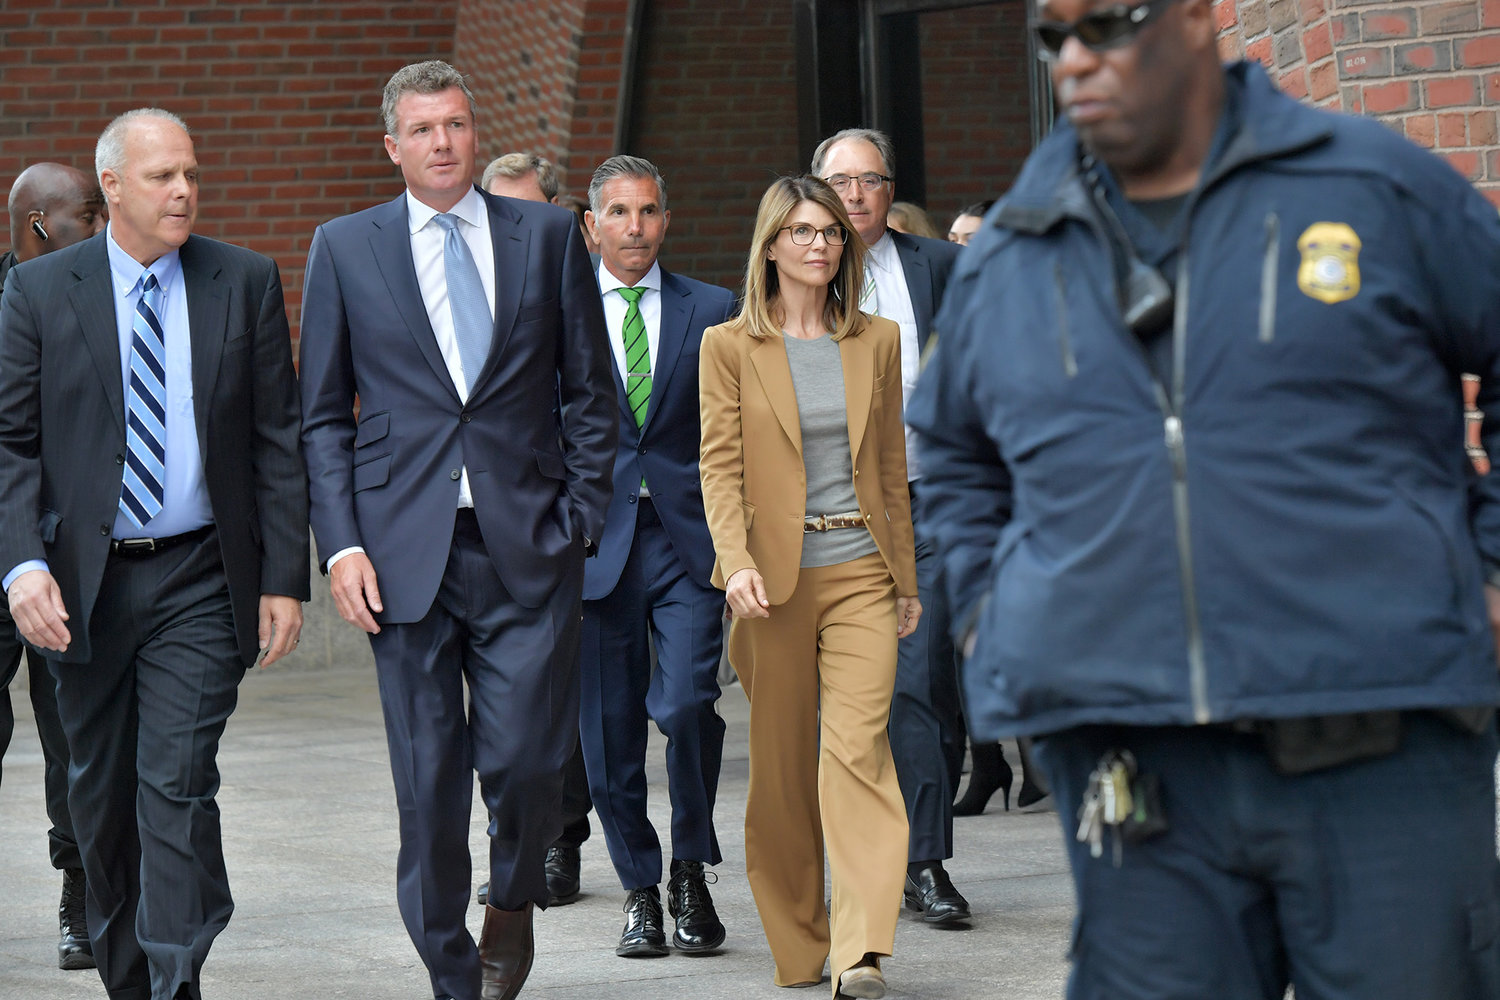 Lori Loughlin exits the John Joseph Moakley U.S. Courthouse after appearing in Federal Court to answer charges stemming from college admissions scandal on April 3, 2019 in Boston, Mass.